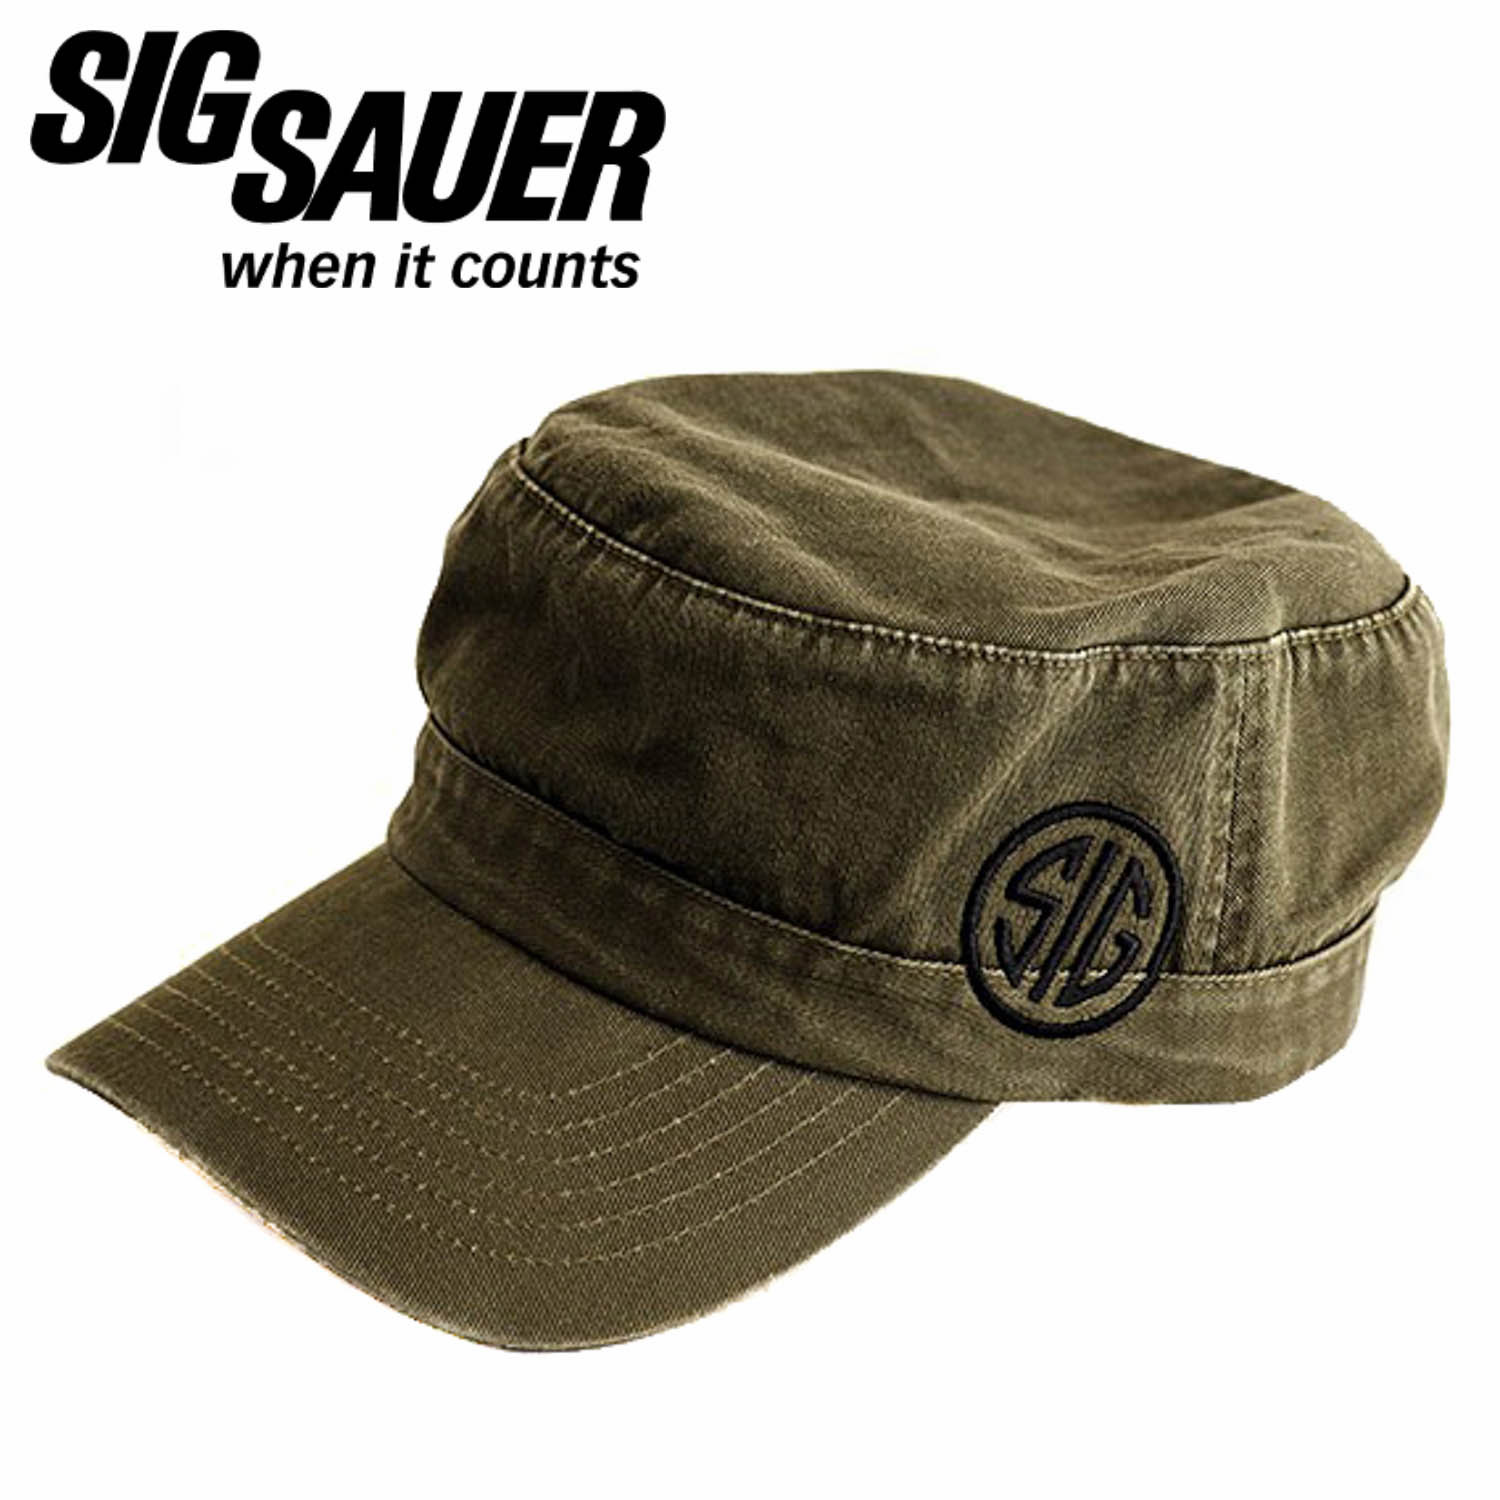 Sig Sauer Military Style Hat f93bf2eb2dc